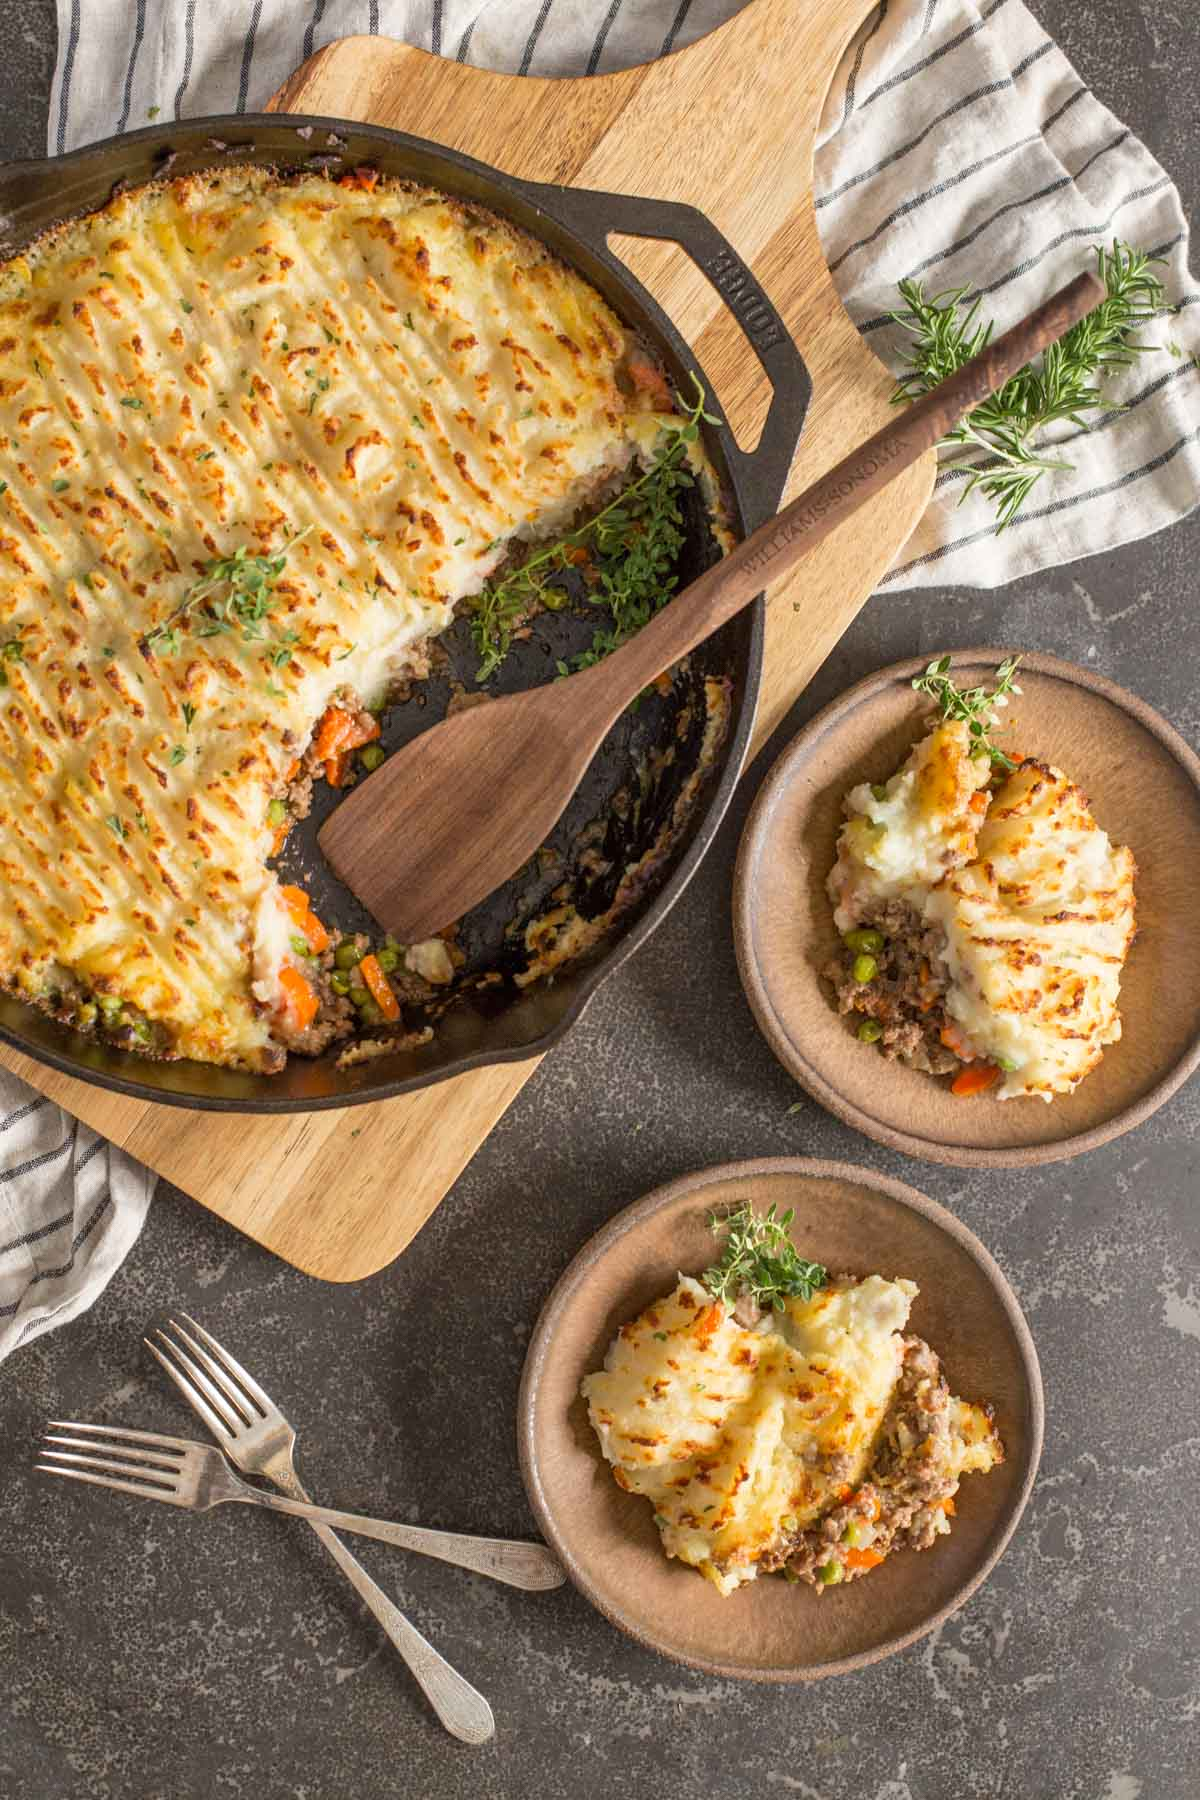 Two servings of Easy Homemade Shepherd's Pie dished on to two plates, with two forks next to them as well as the cast iron skillet of Easy Homemade Shepherd's Pie with a wooden spoon in it.